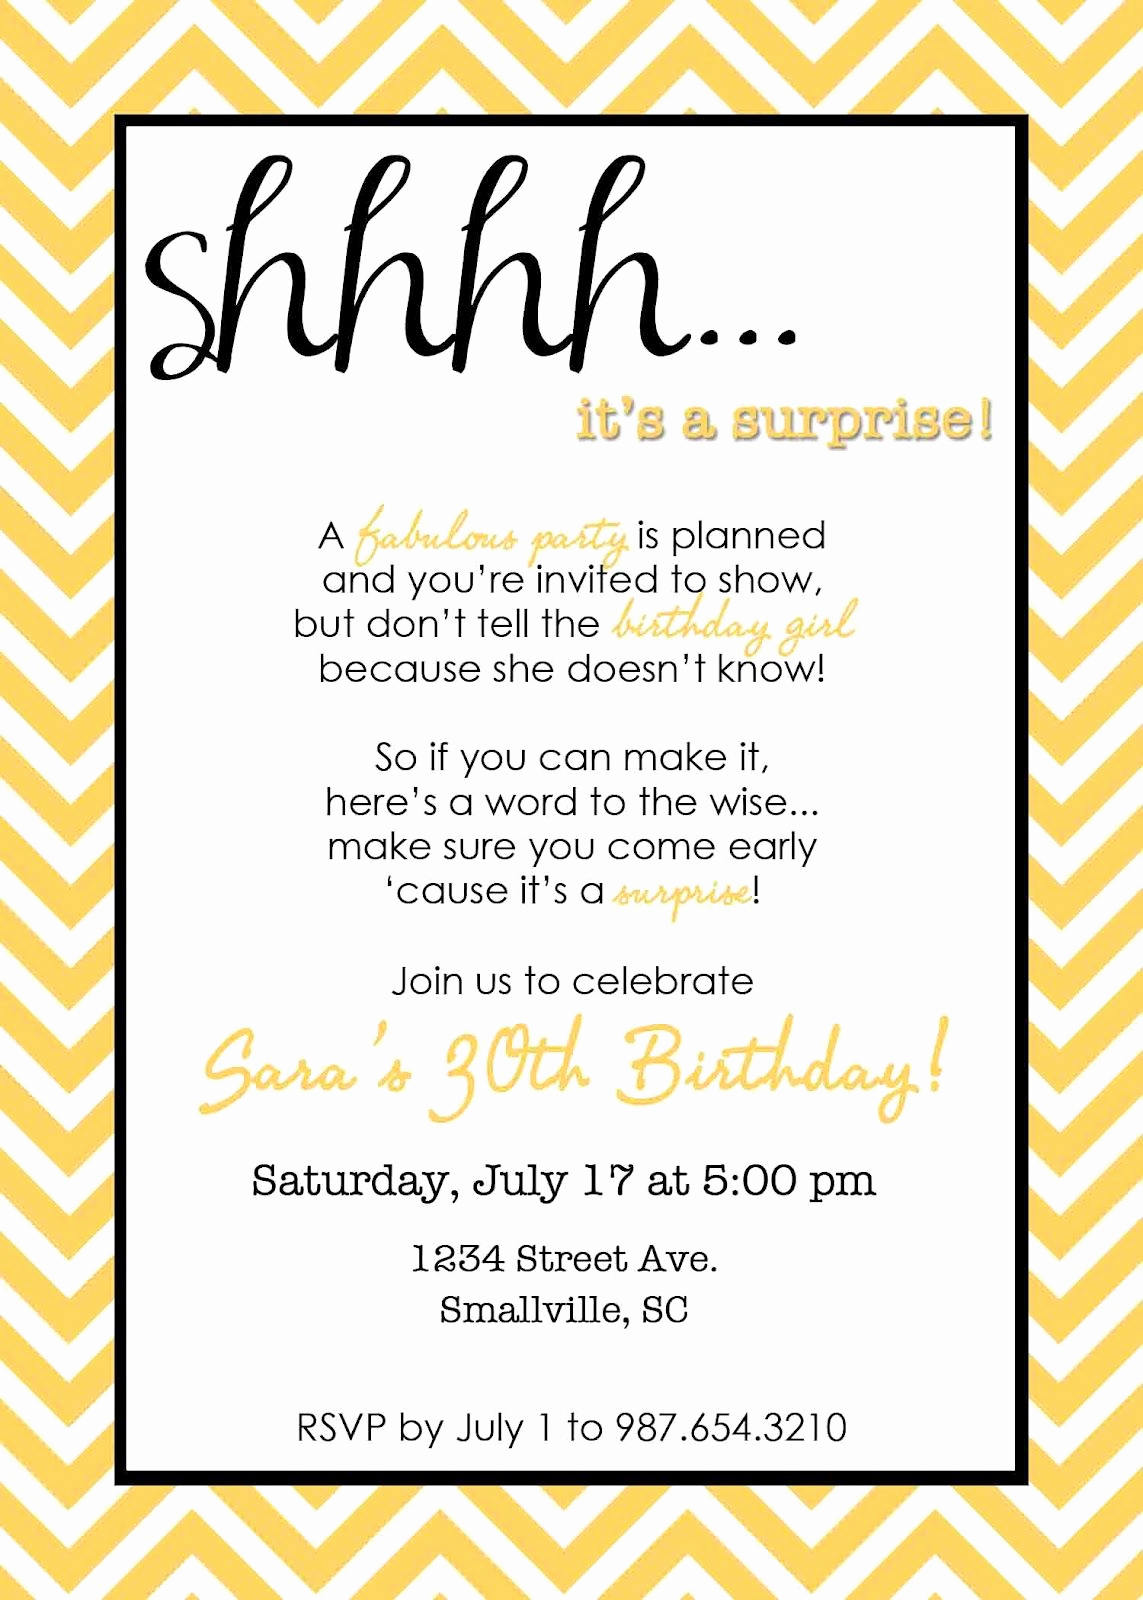 Invitation Message for Party Elegant Wording for Surprise Birthday Party